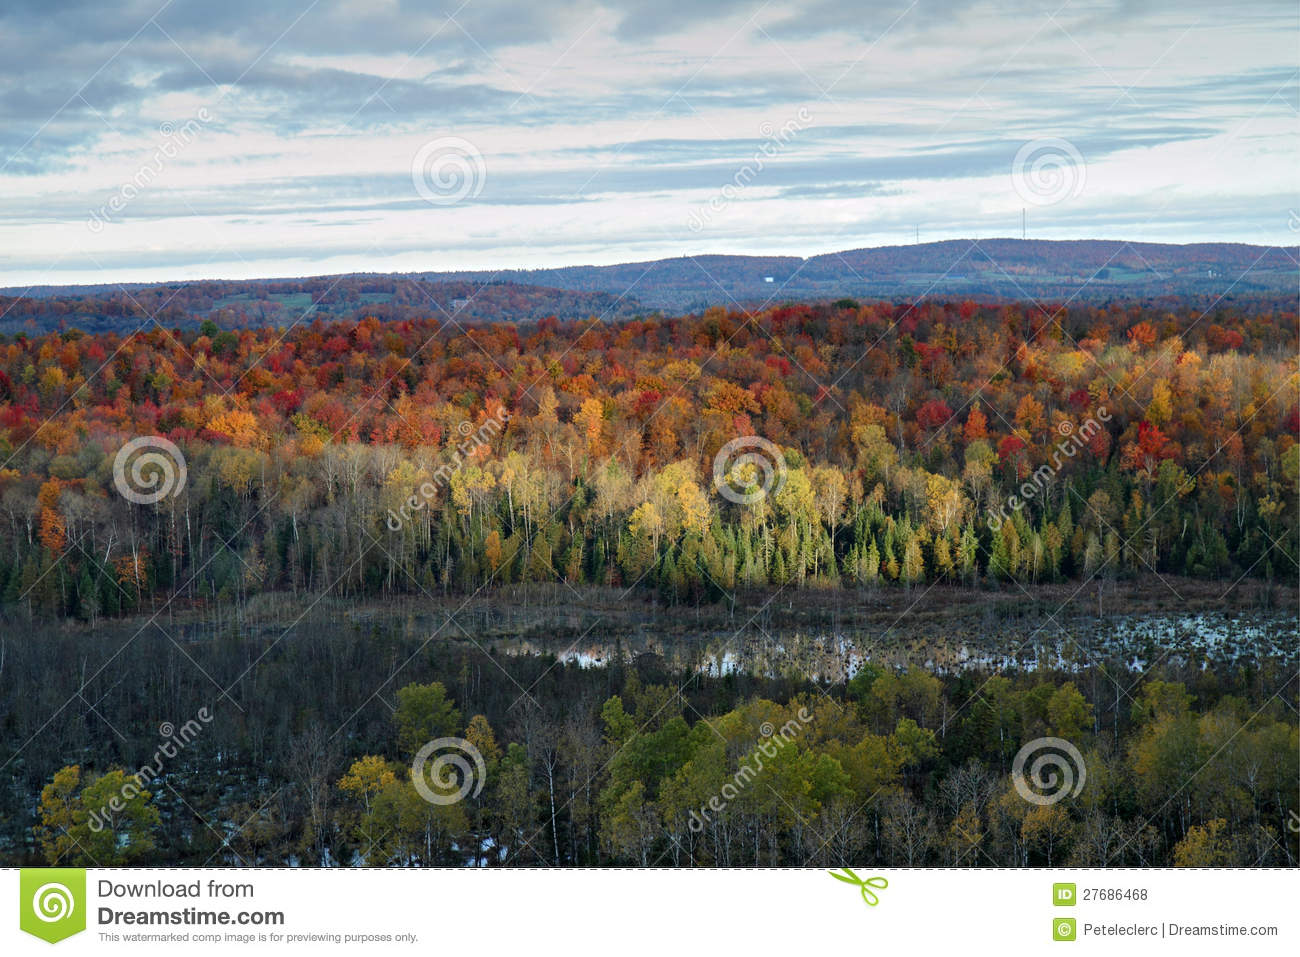 Autumn in the mountains of Sherbrooke